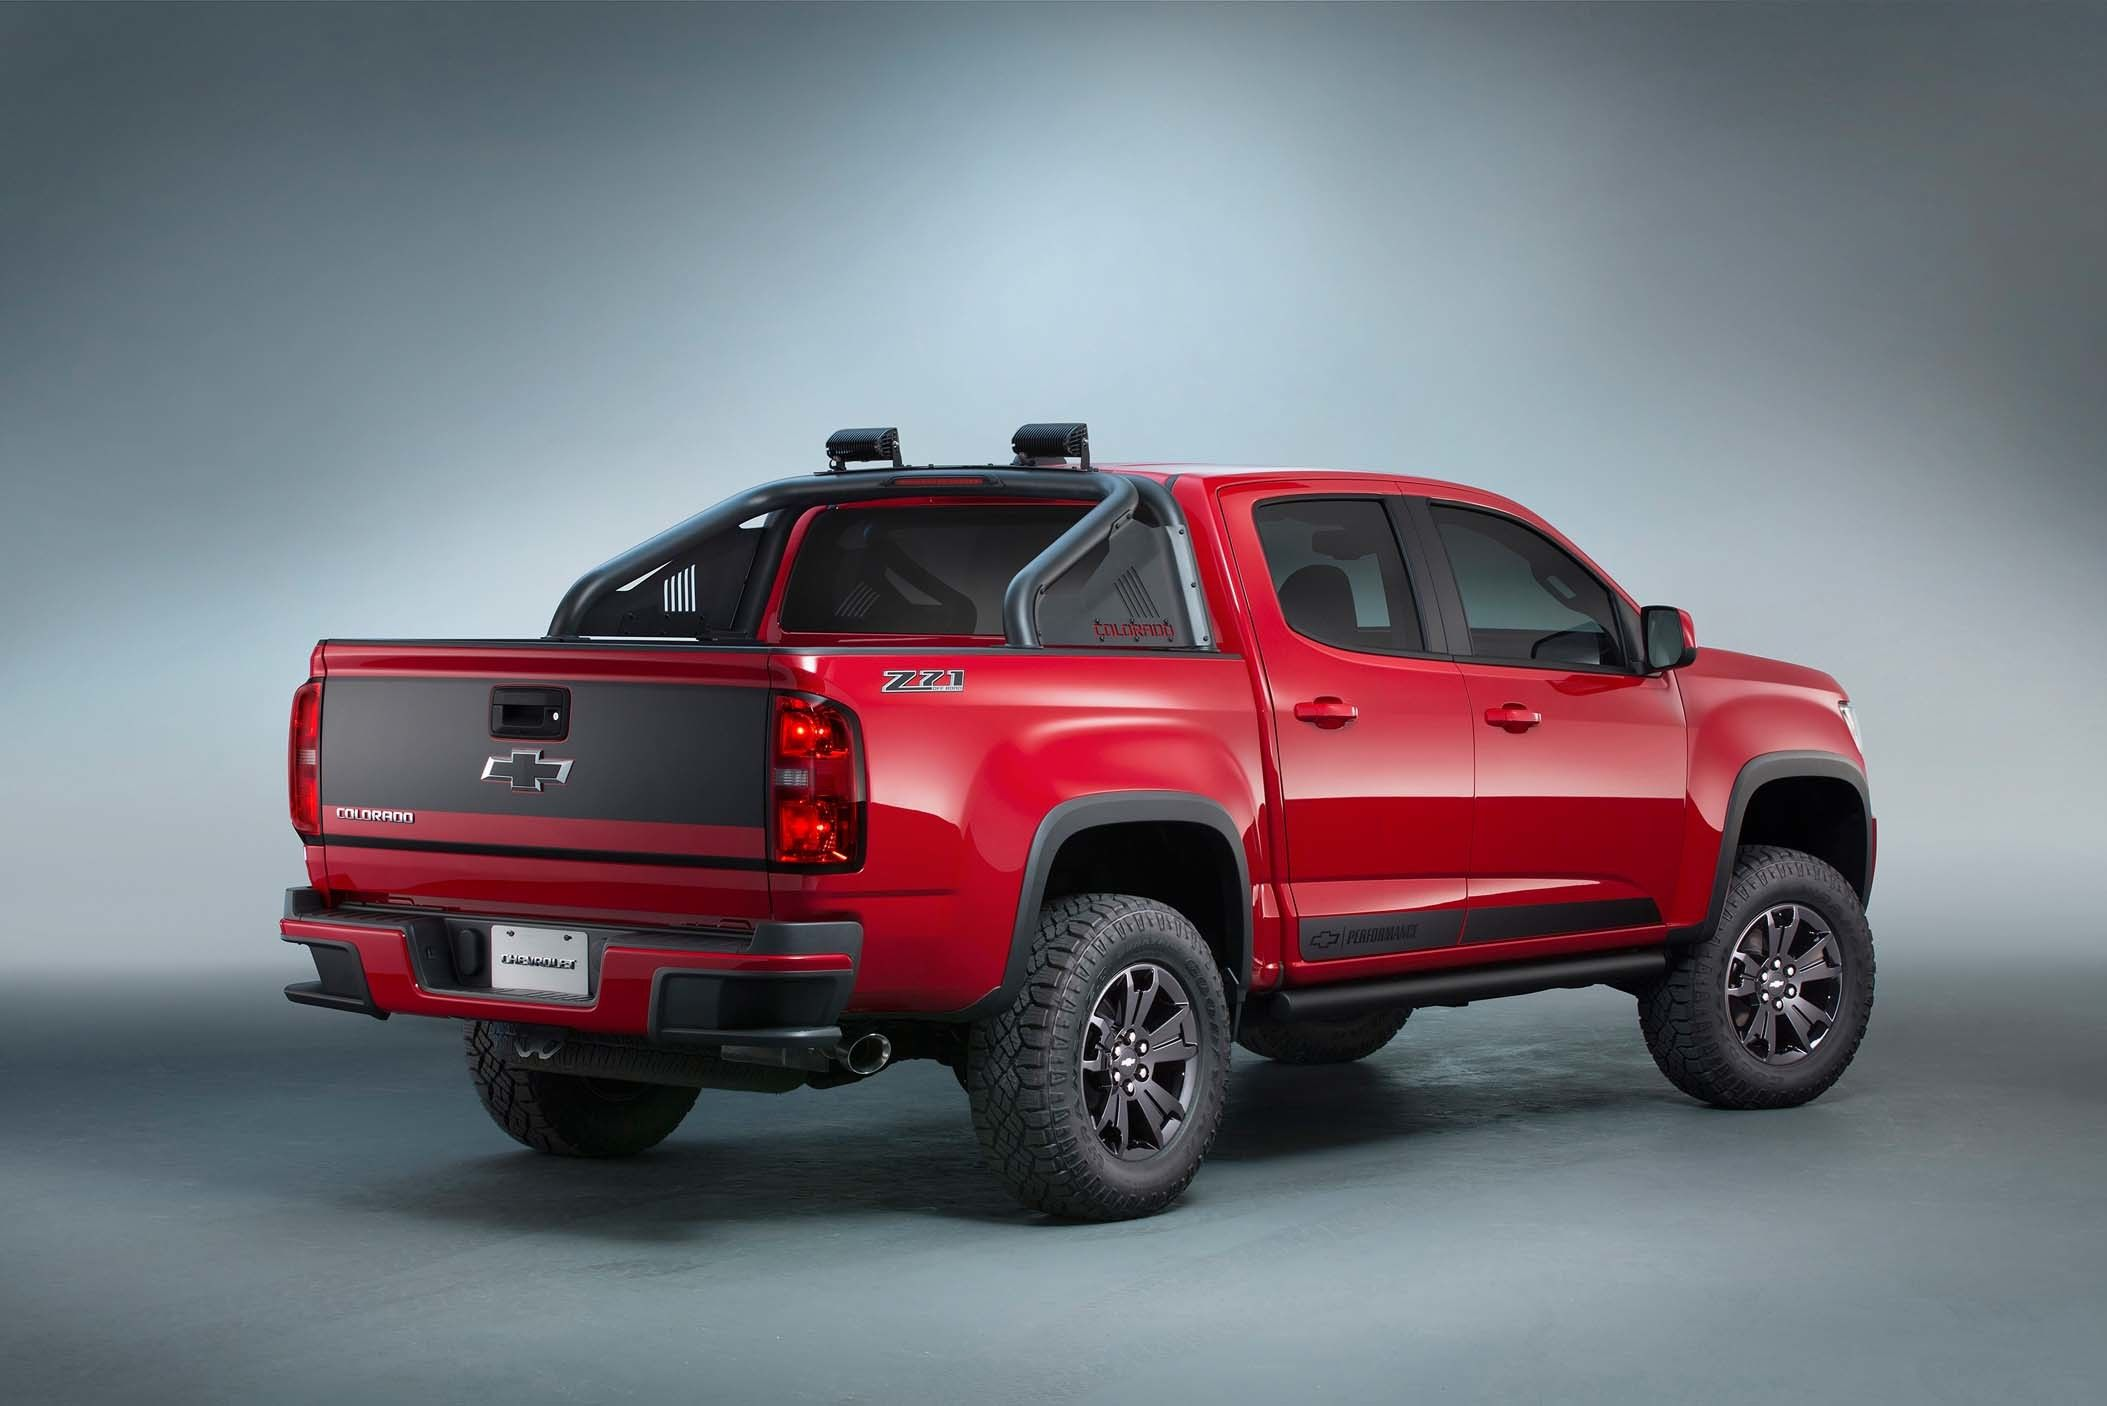 Chevy Colorado Z71 Trail Boss 3 0 Concept Heads To Sema Chevy